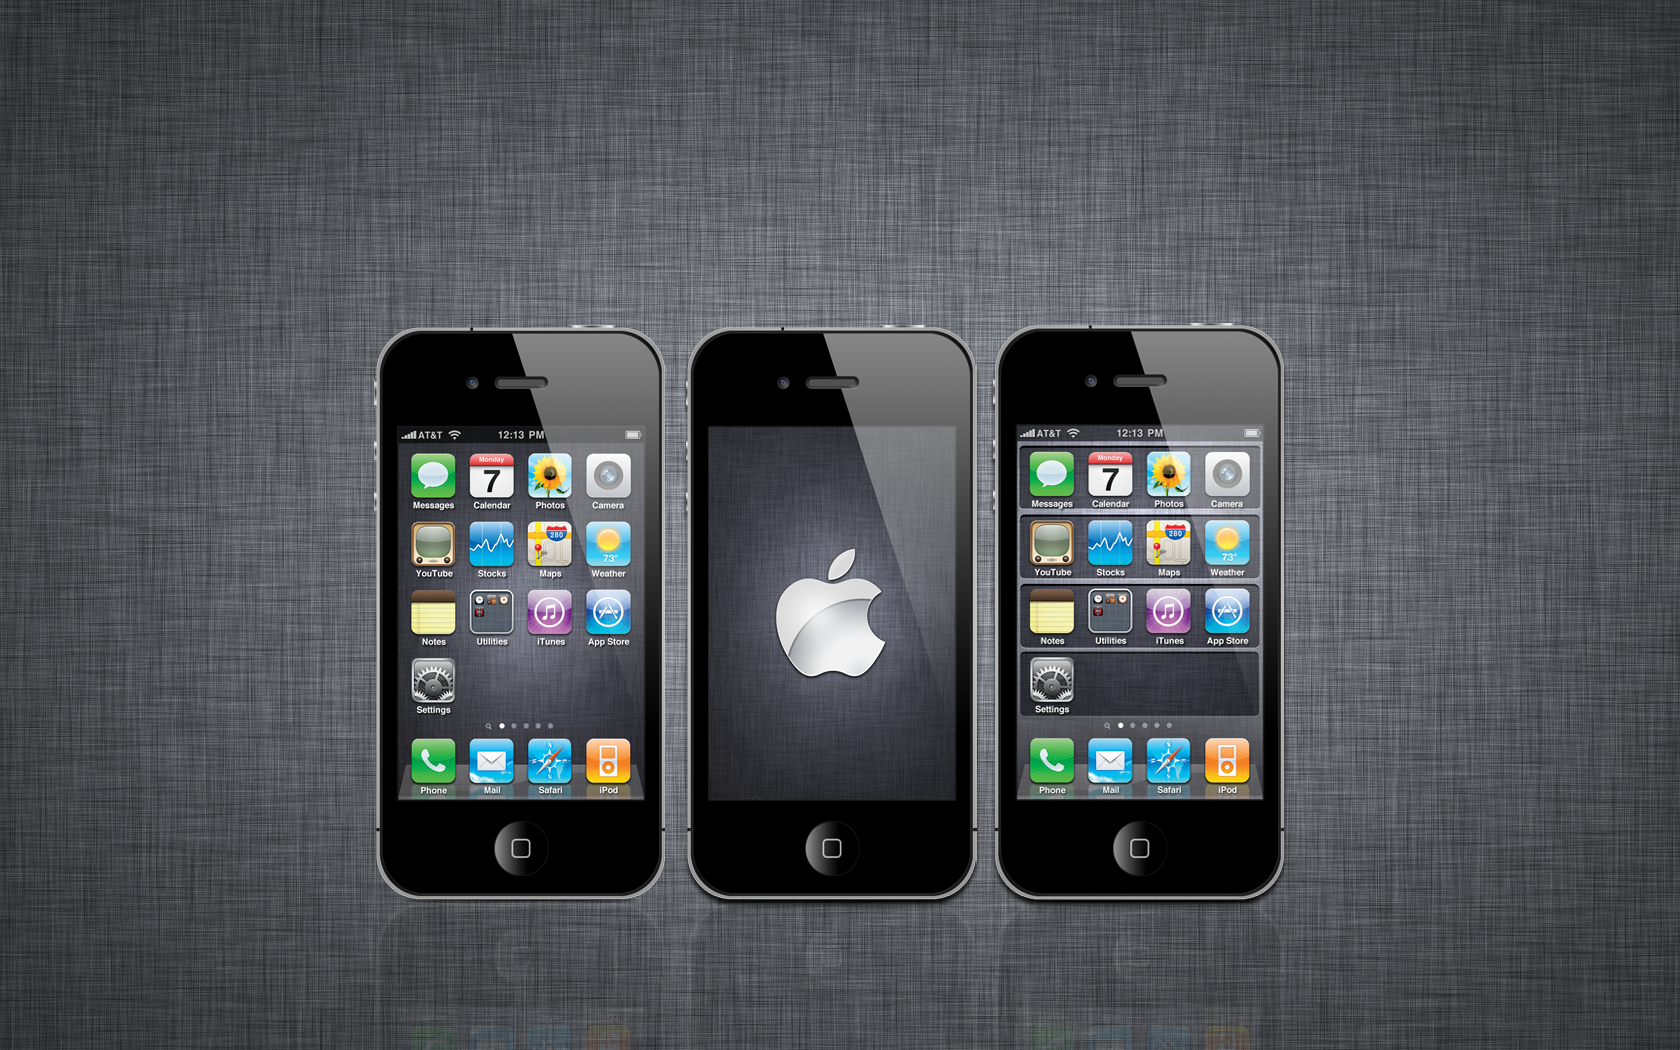 IOS 5 Wallpaper Pack By ITeppo On DeviantArt